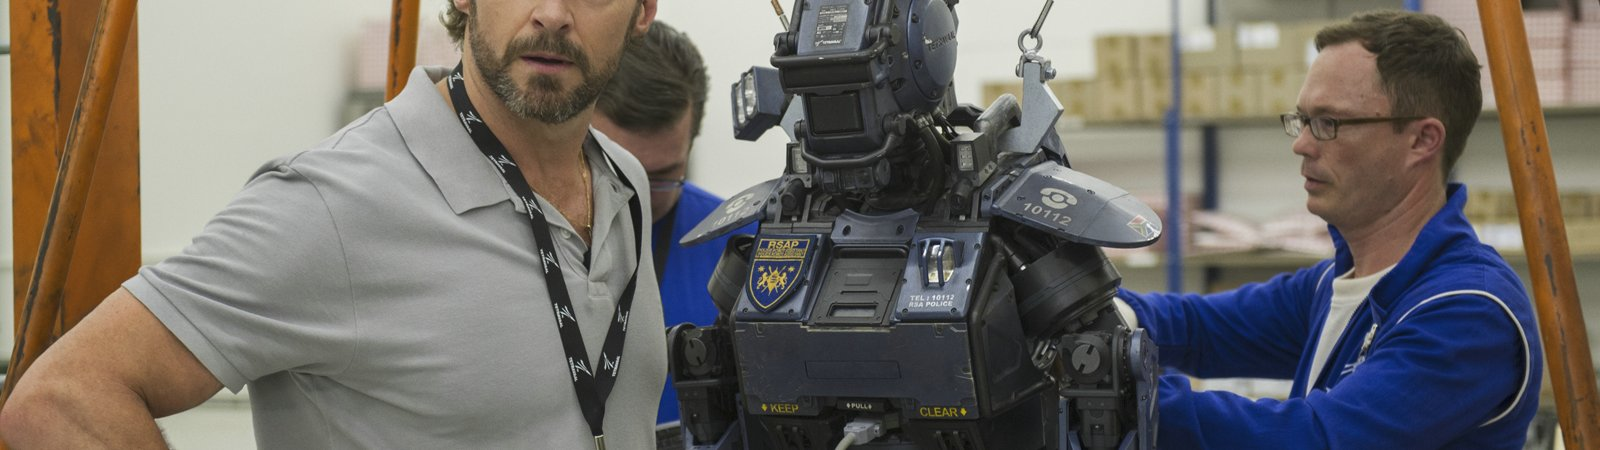 Photo dernier film Neill Blomkamp